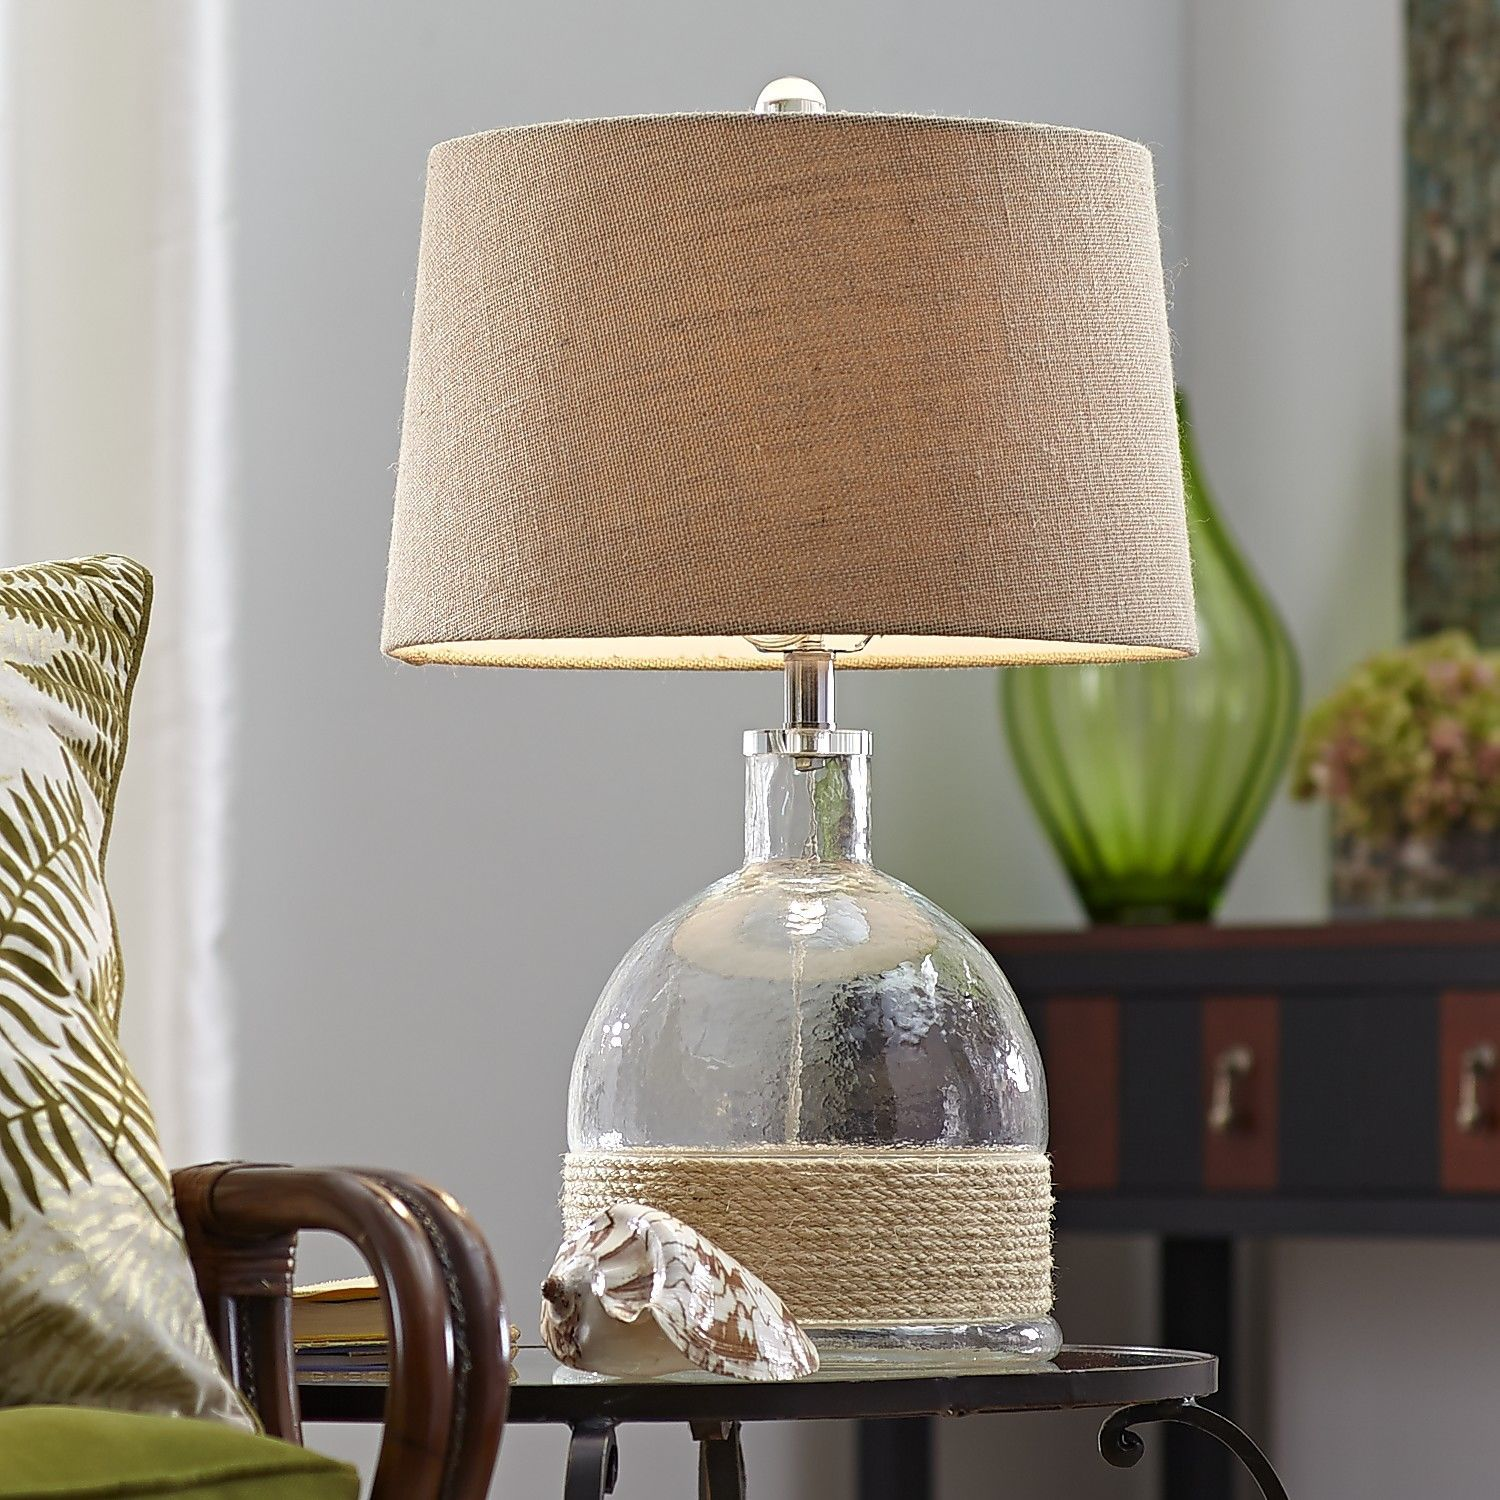 Pier One Table Lamps Rope & Glass Lamp  Pier 1 Imports  Beach House  Pinterest  Small